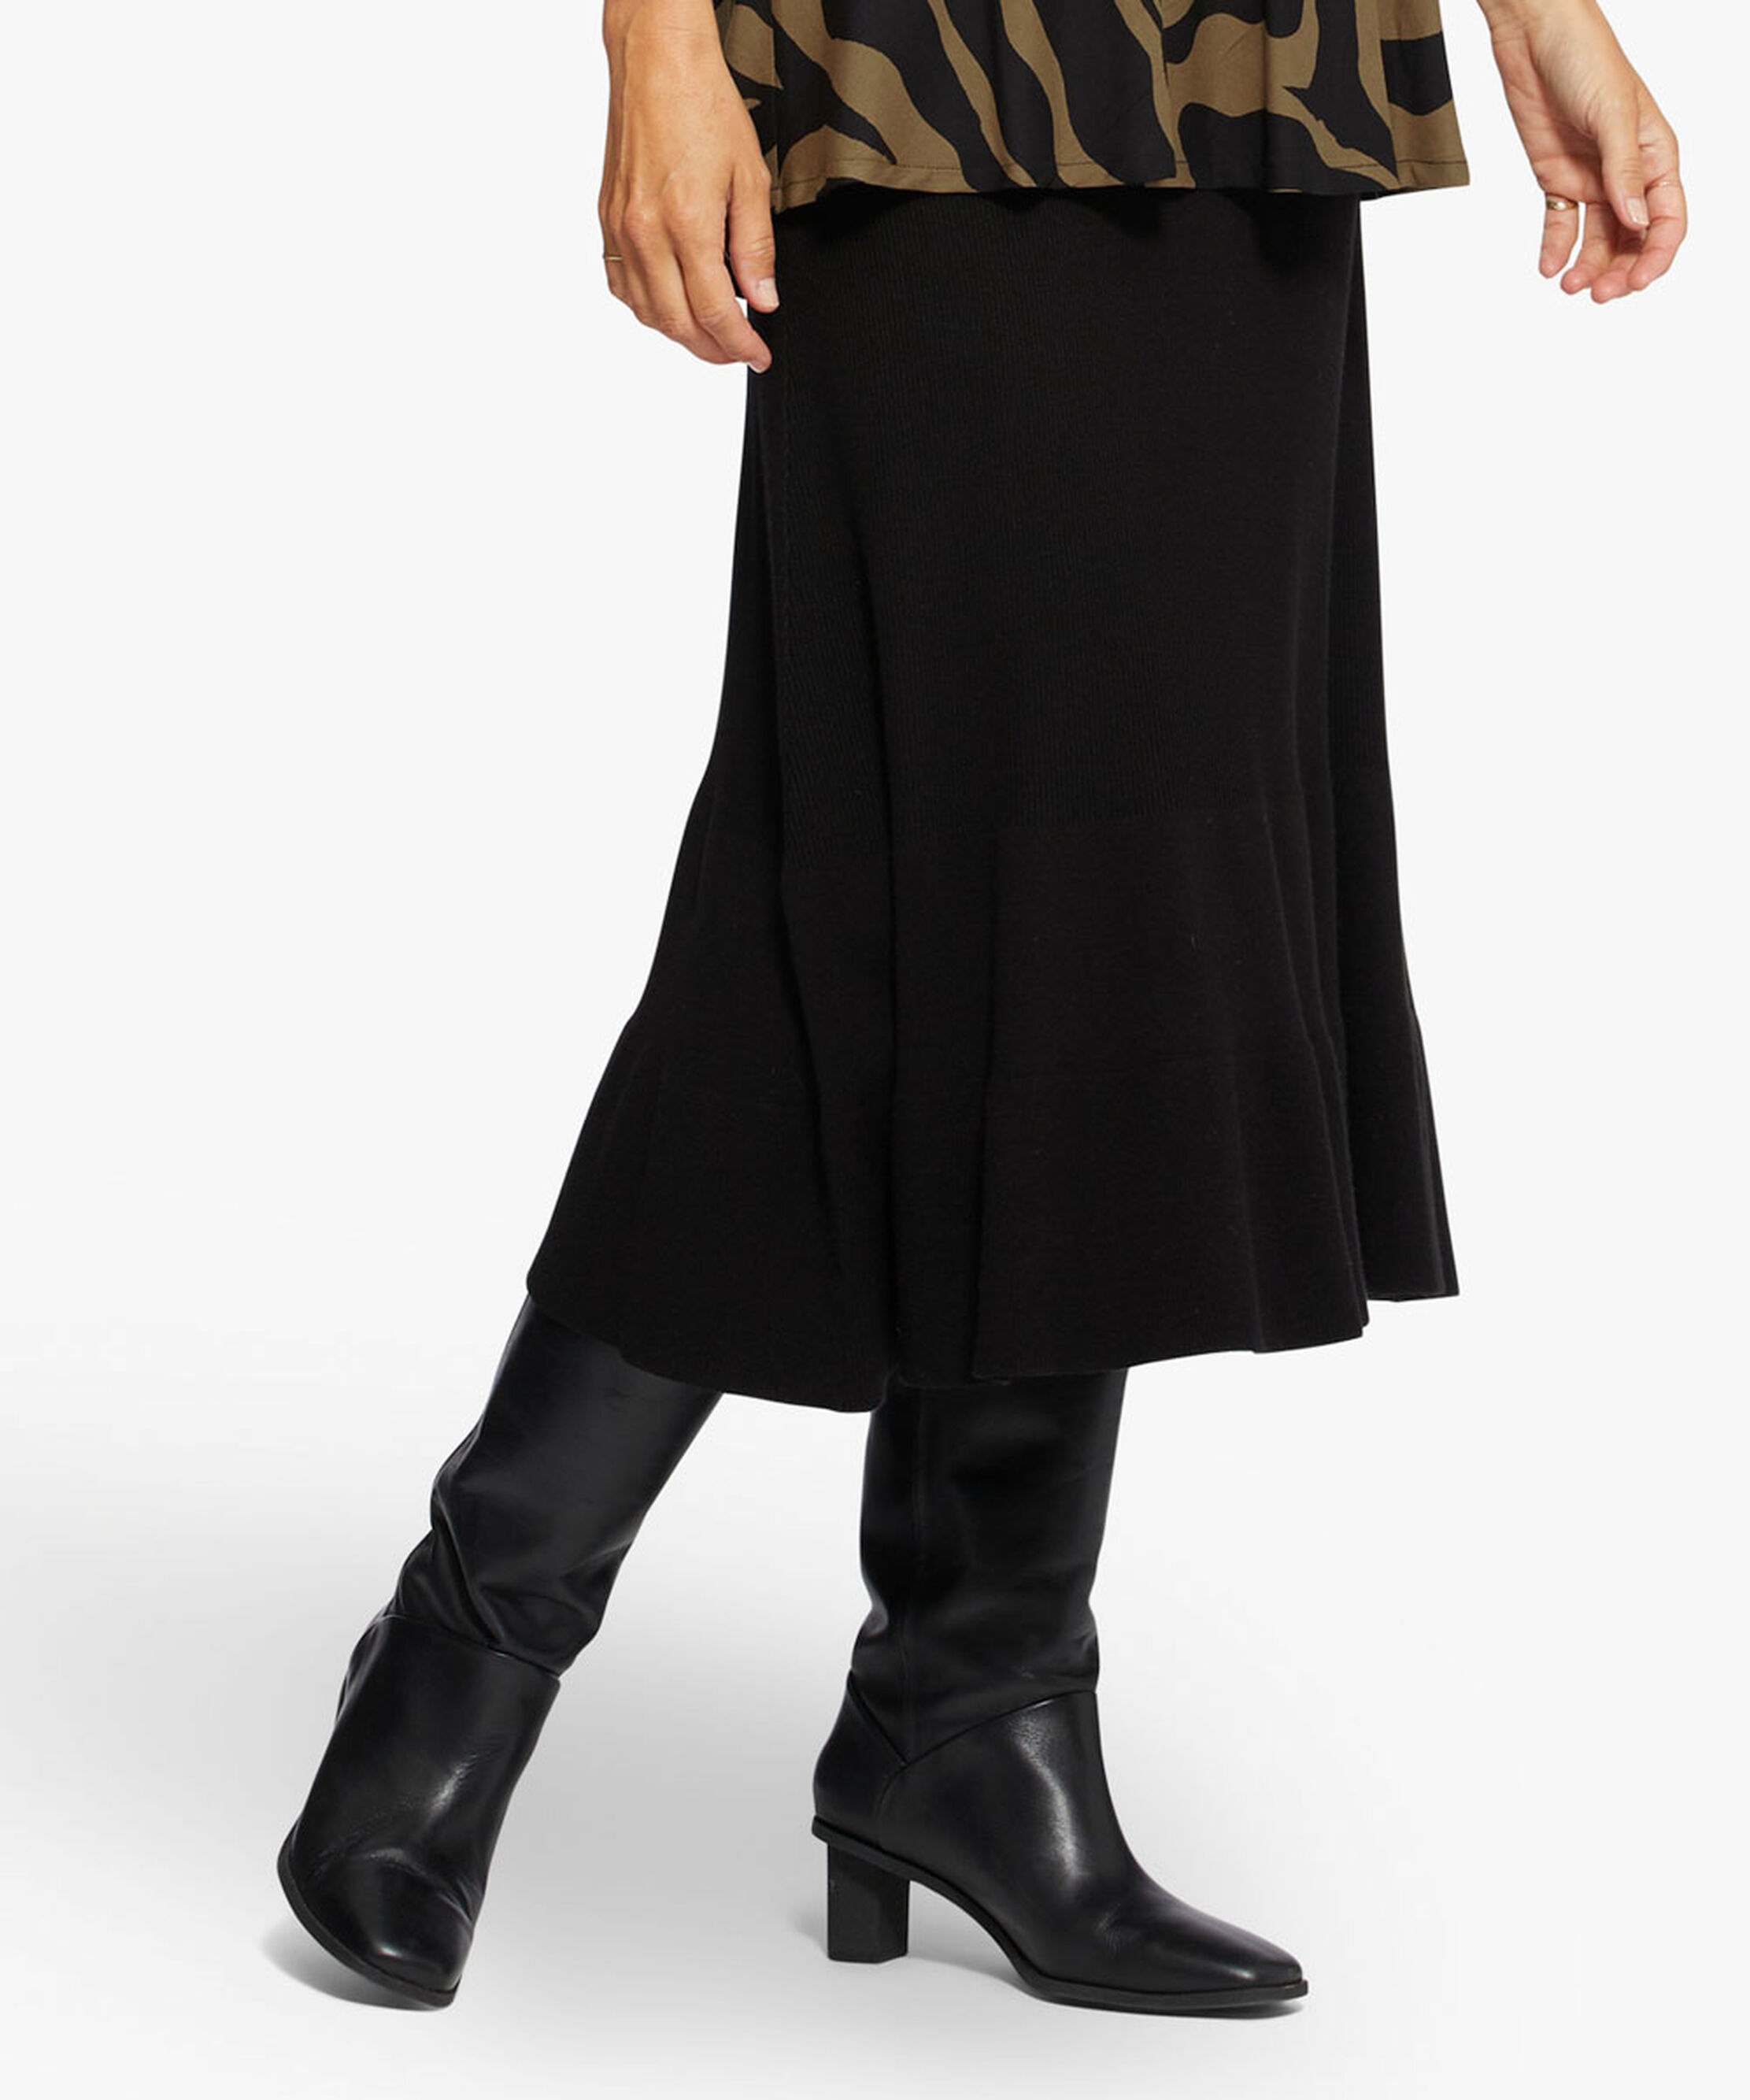 SORINA SKIRT, Black, hi-res